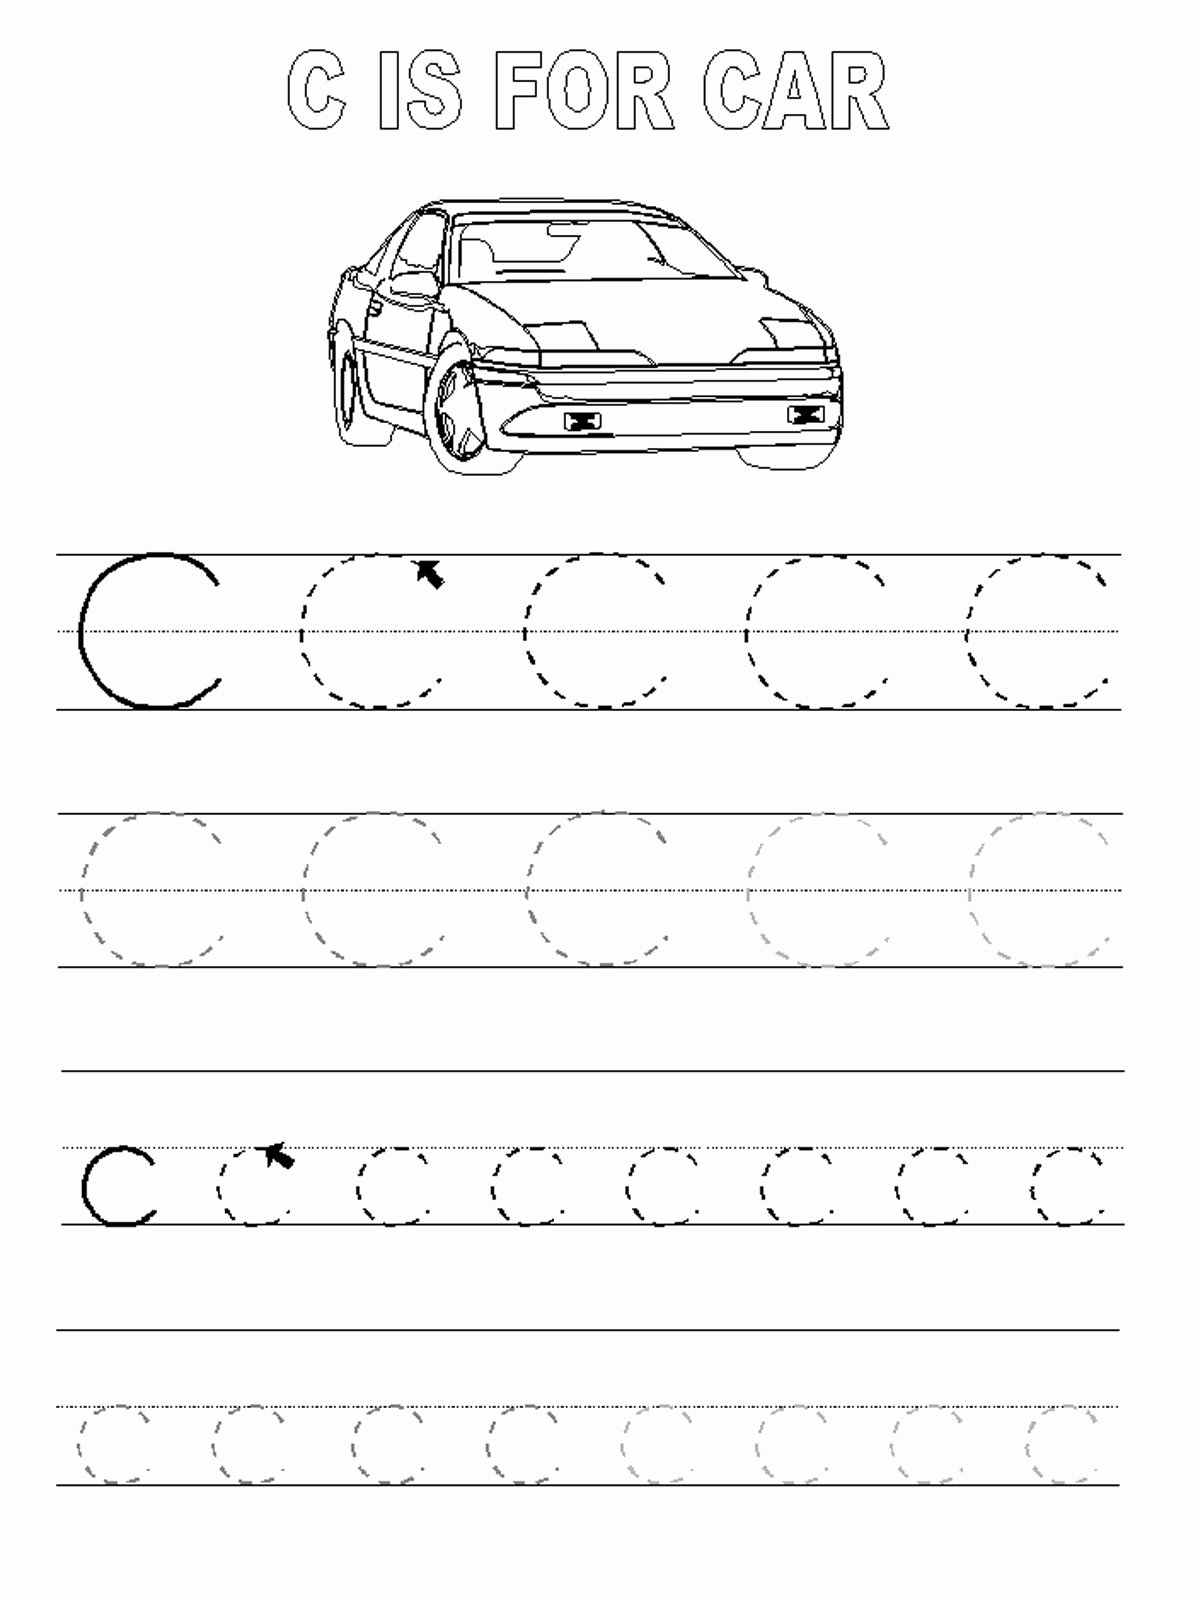 Car Worksheets for Preschoolers Best Of Trace Letter Worksheets Activity Shelter Tracing Car